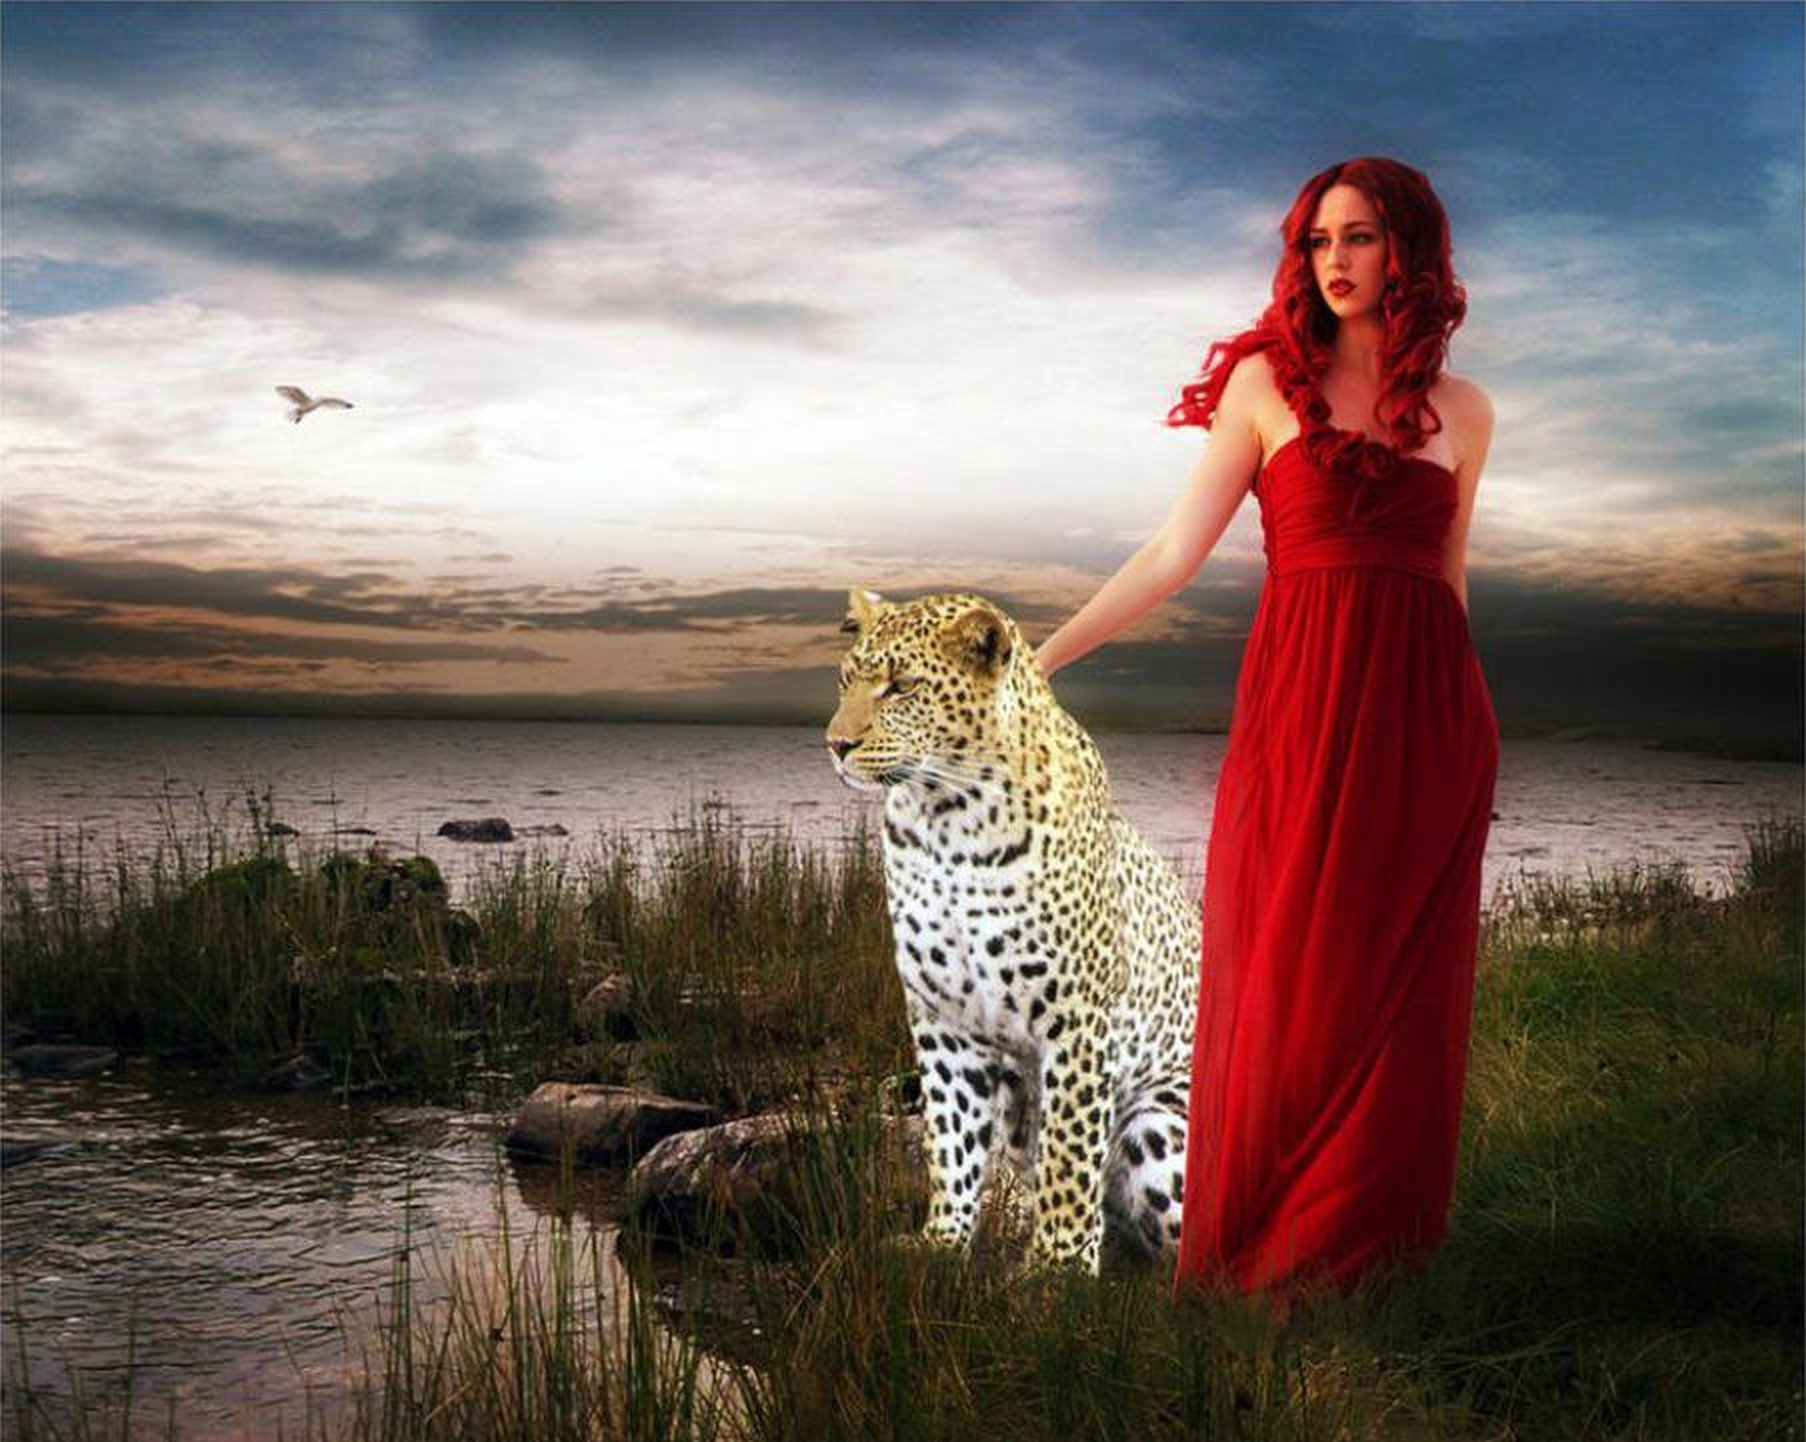 red tiger fantasy leopard wild lady jessica wallpaper